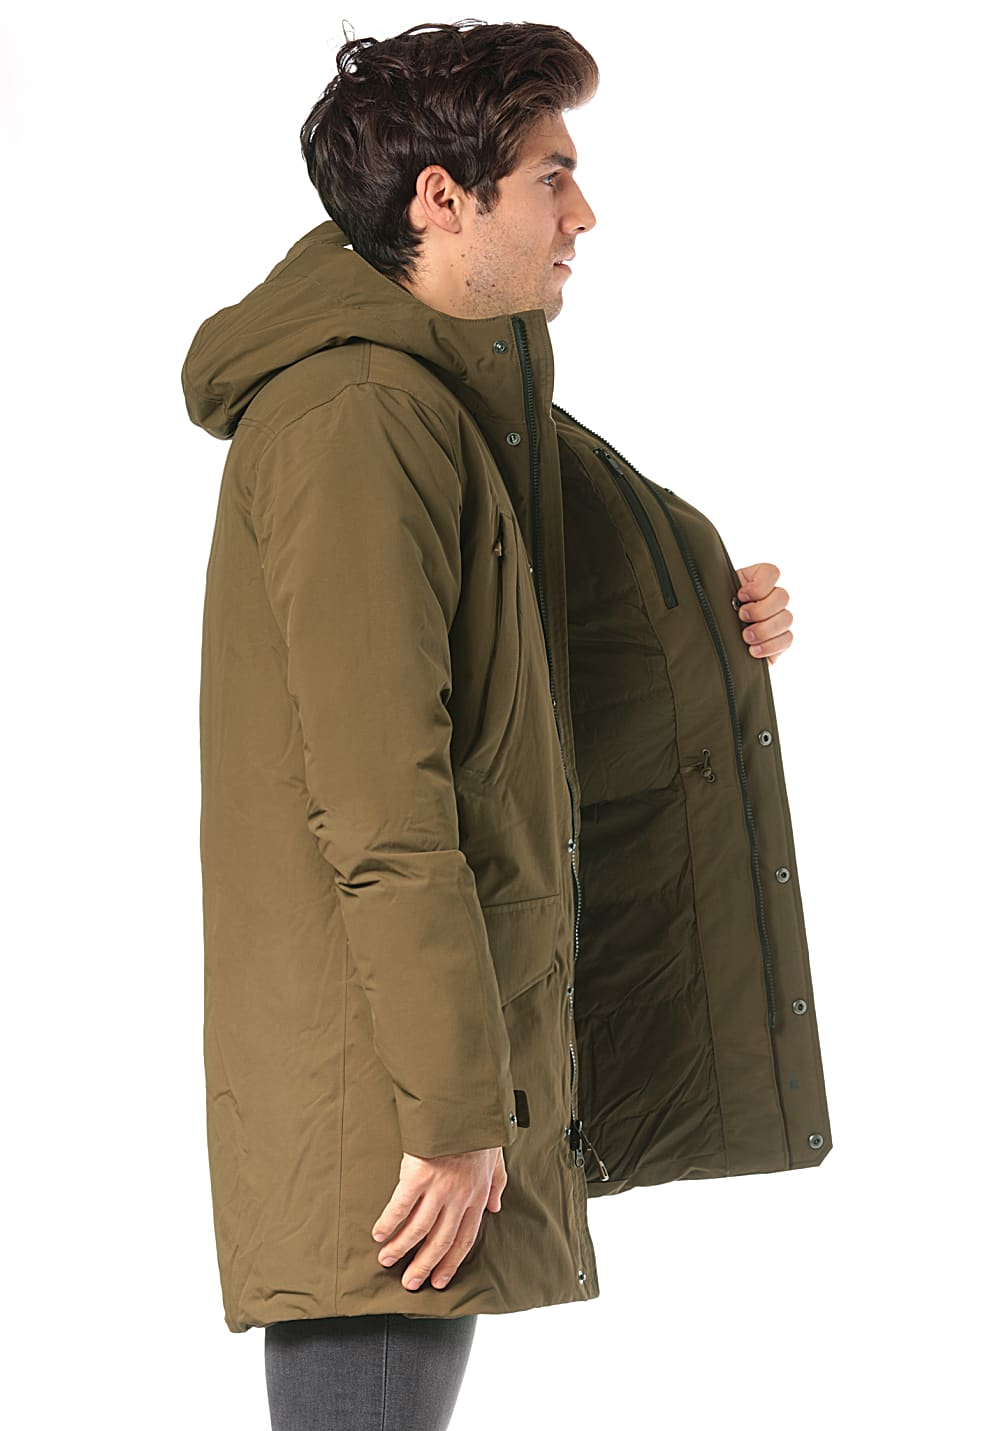 1b7b130836f PATAGONIA City Storm - Outdoor Jacket for Men - Green